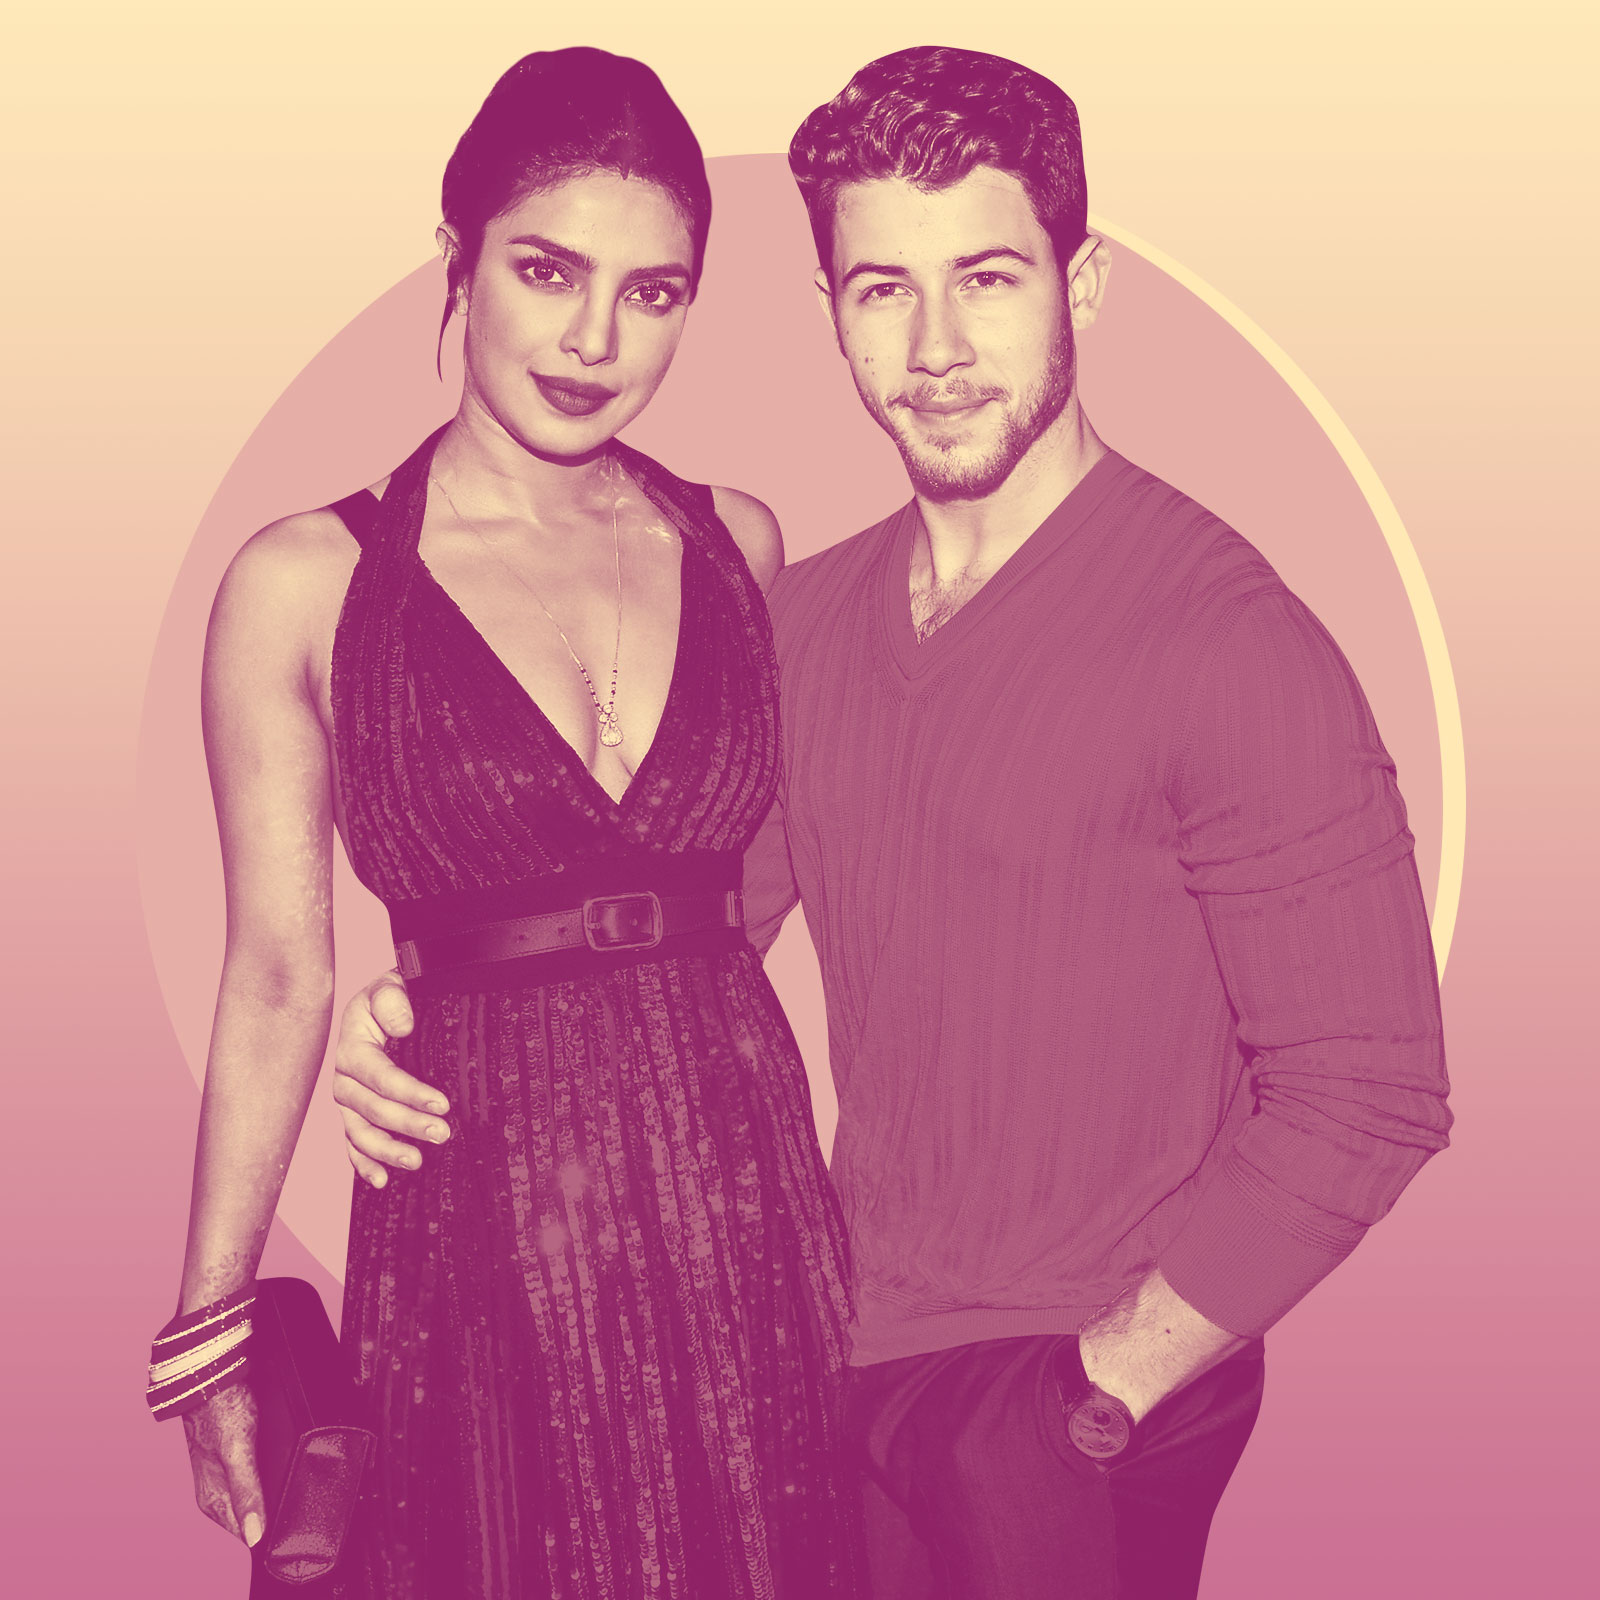 2dc58c4311 Nick Jonas and Priyanka Chopra's Venus Signs May Explain Their Intense Love  | InStyle.com